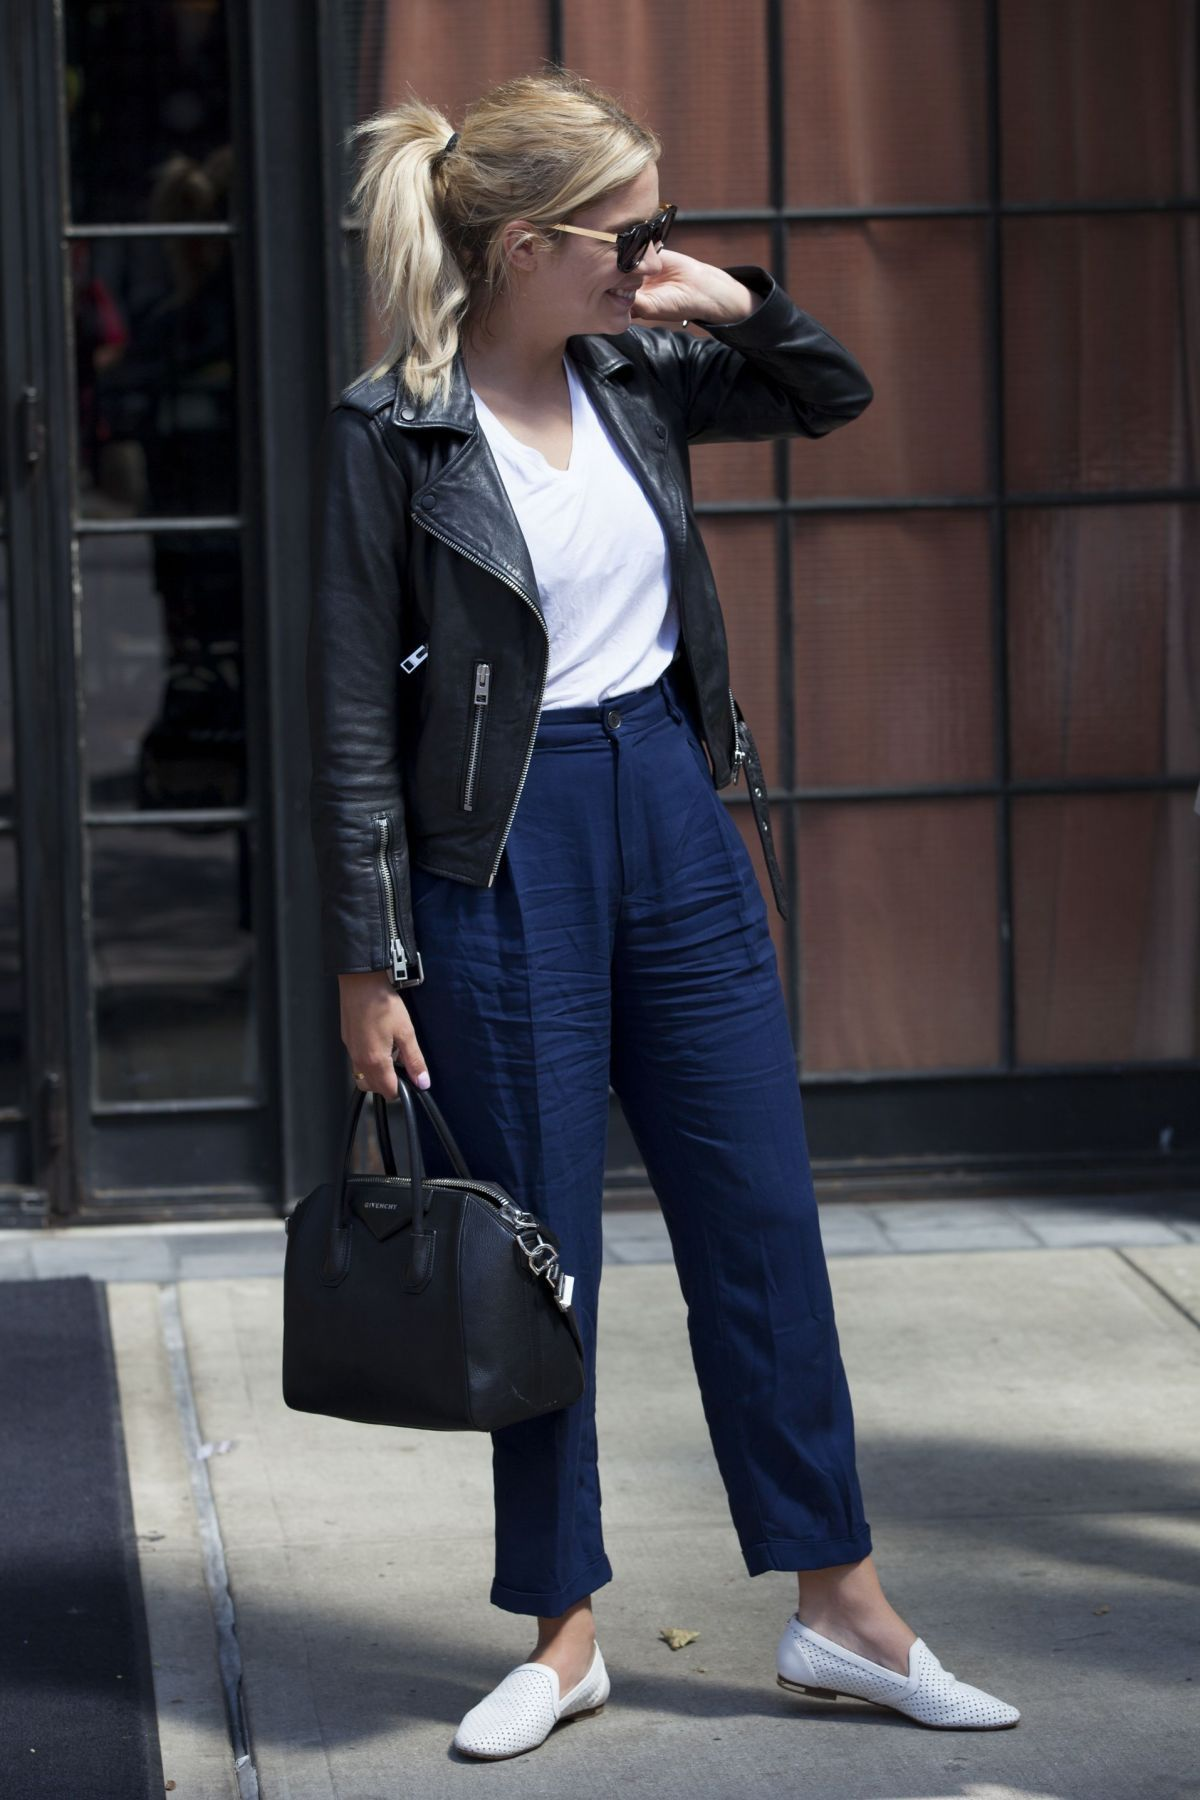 Ashley Benson Out And About In New York 07 25 2015